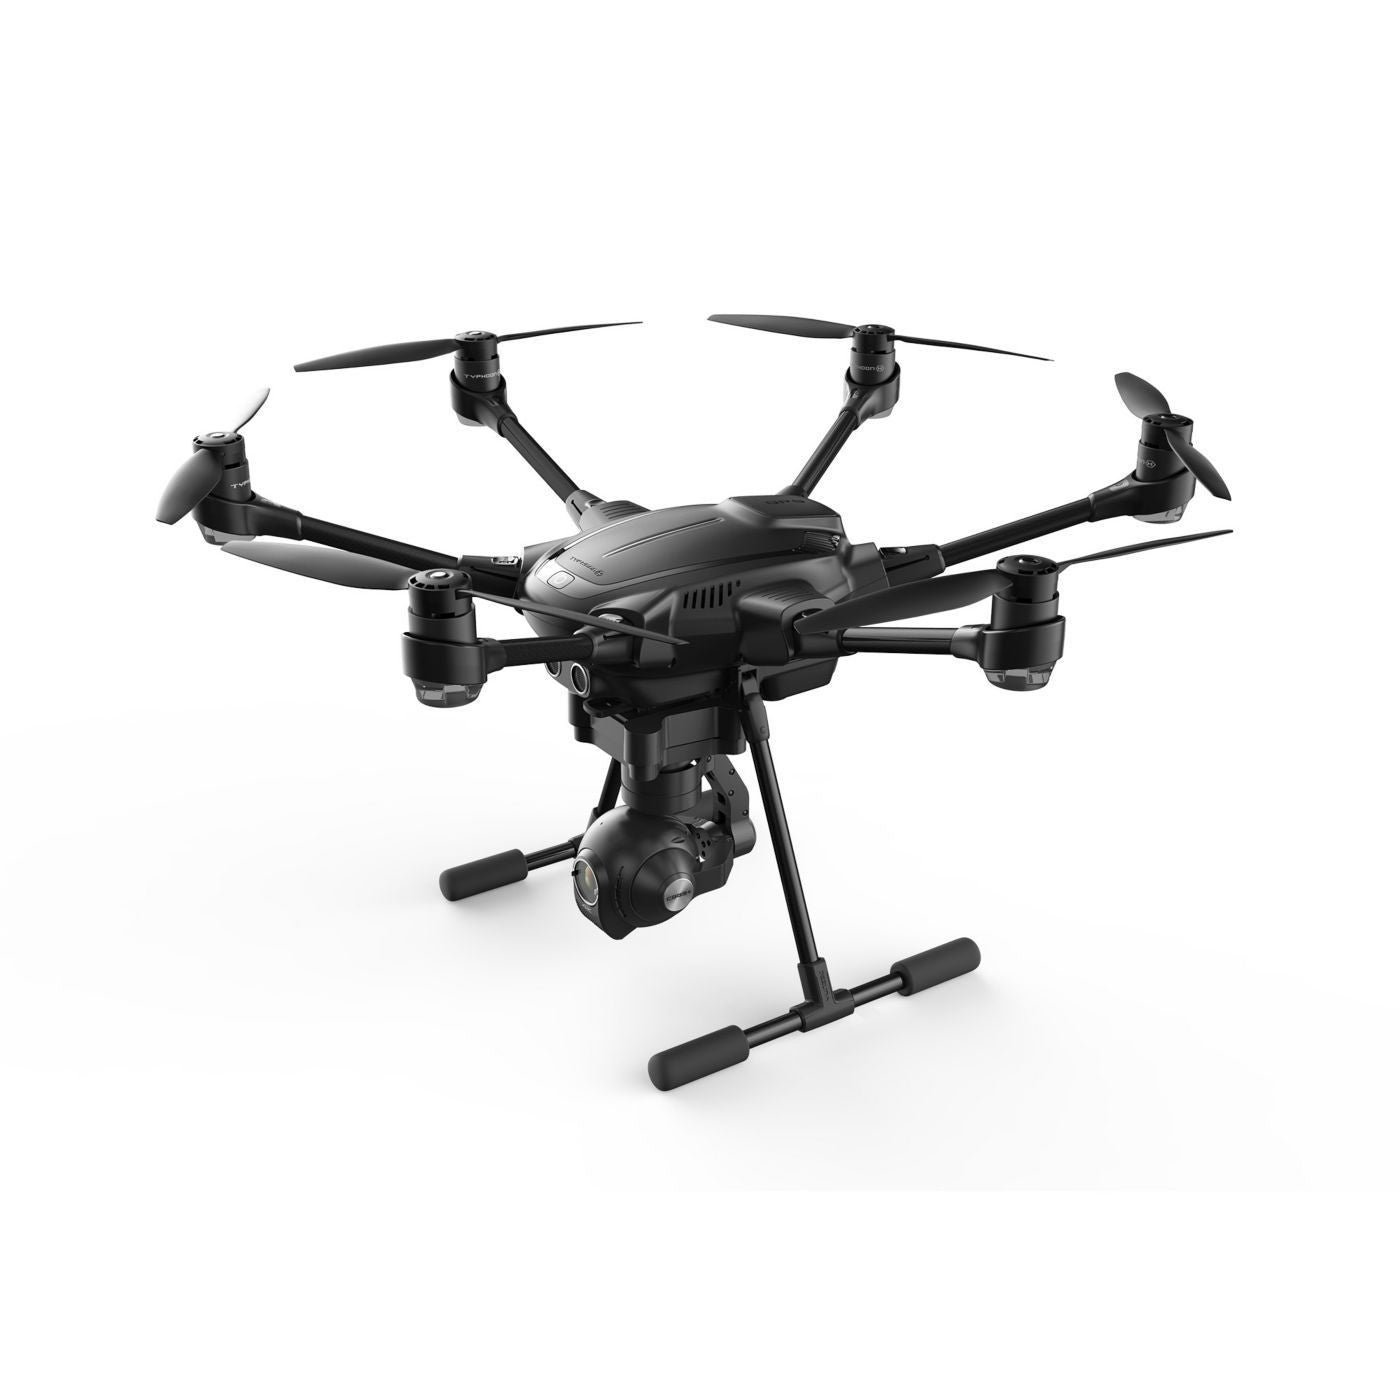 Yuneec Typhoon H 4K Video 12MP Collision Avoidance Hexacopter Drone